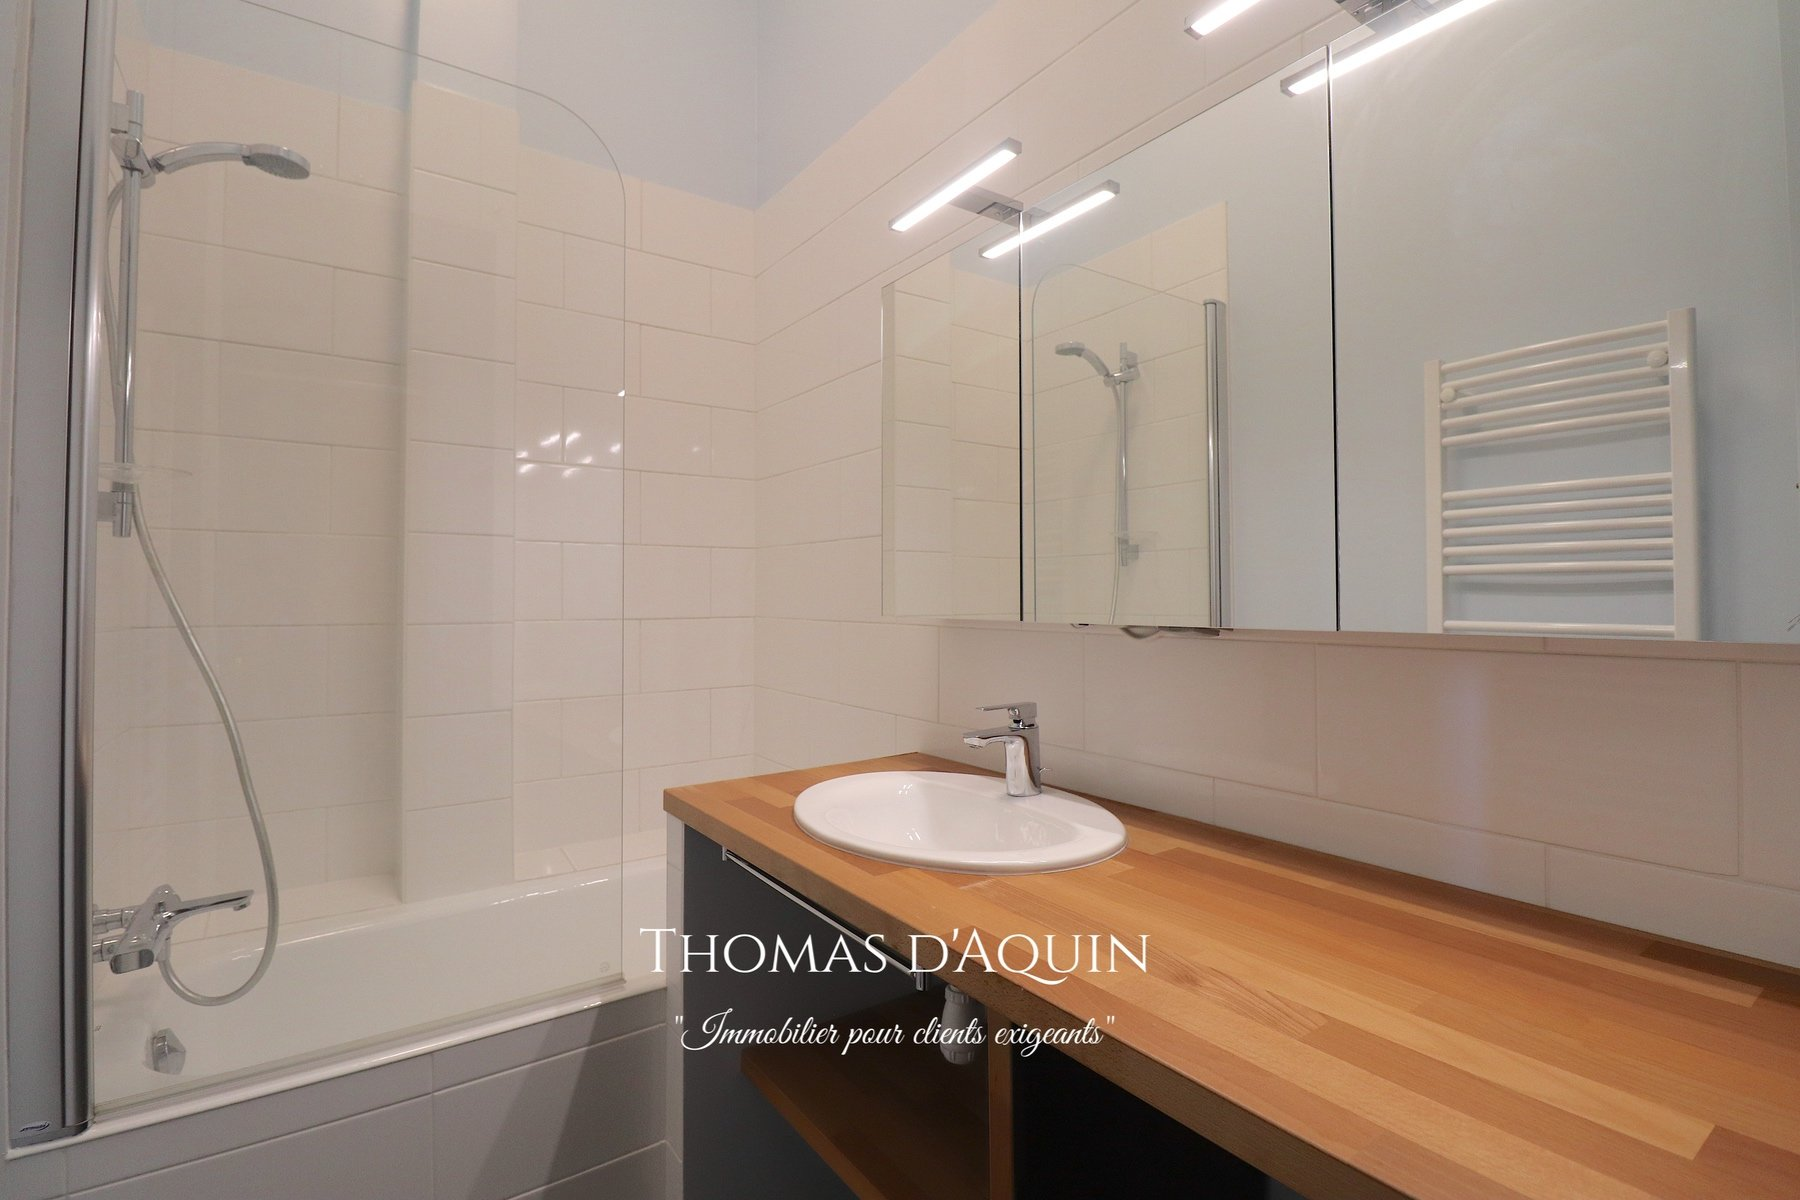 Sale Apartment - Paris 7th (Paris 7ème) Saint-Thomas-d'Aquin